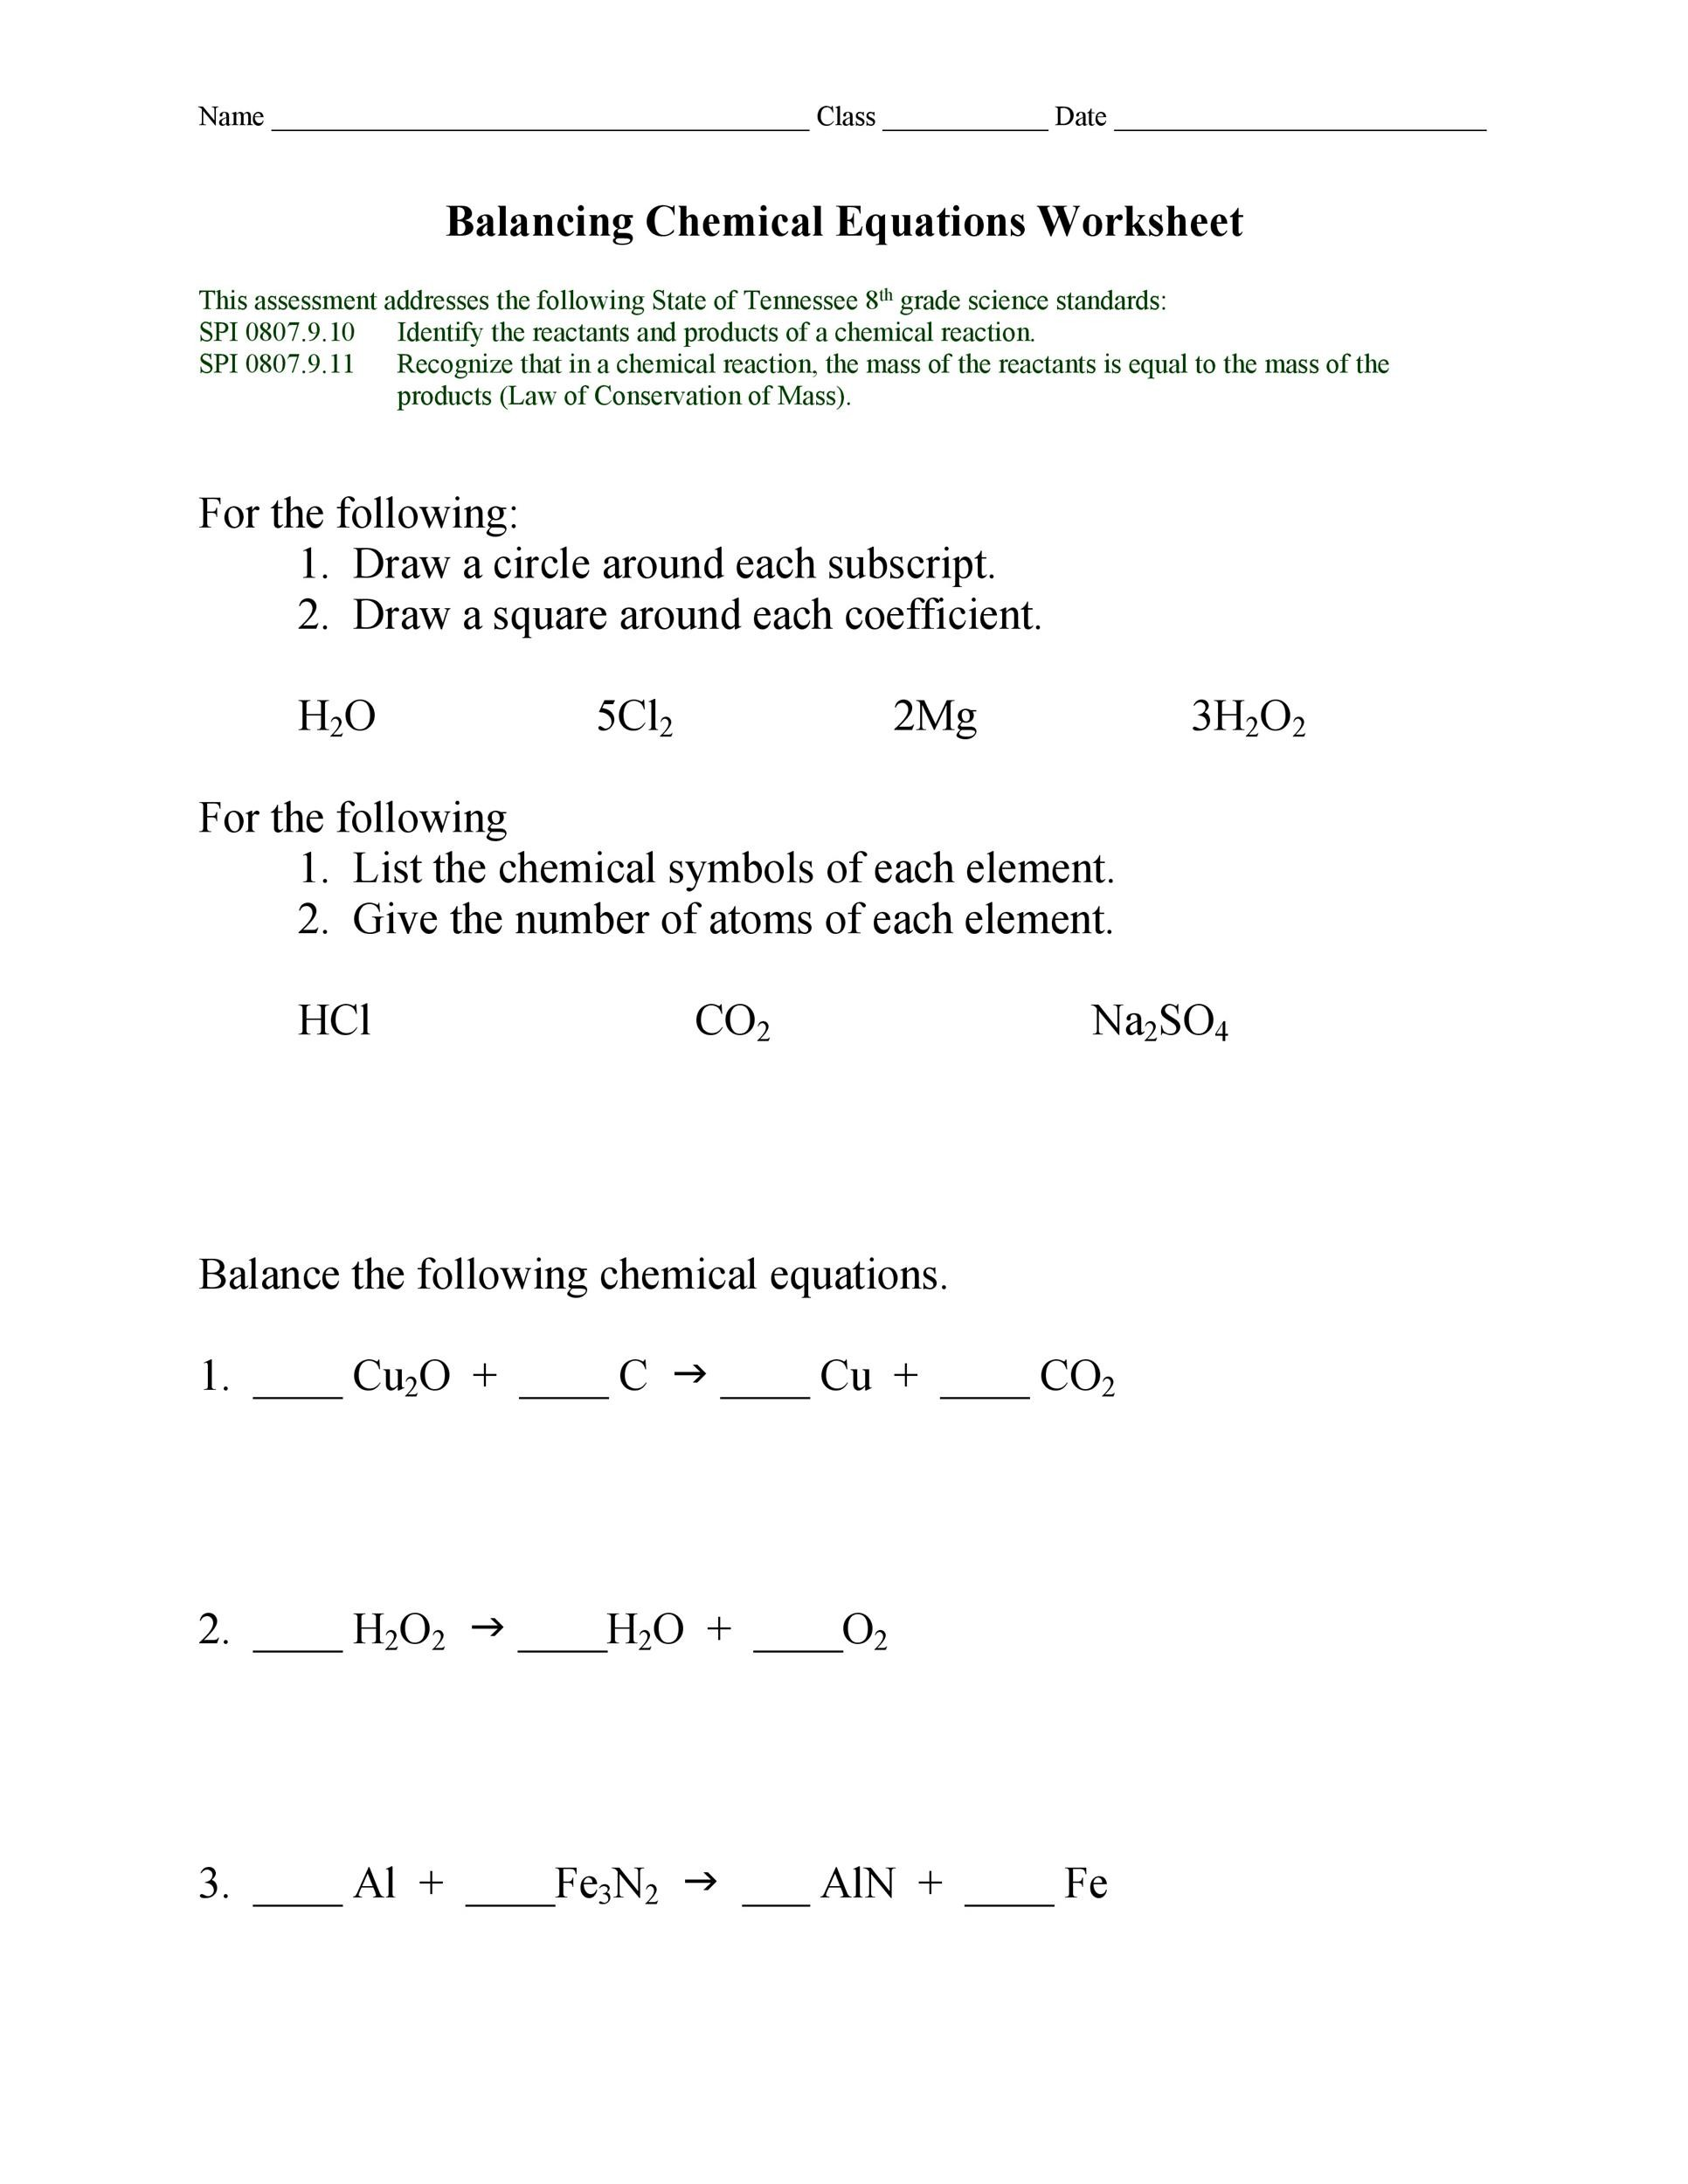 free balancing equations 39 - Balancing Equations Worksheet Answers